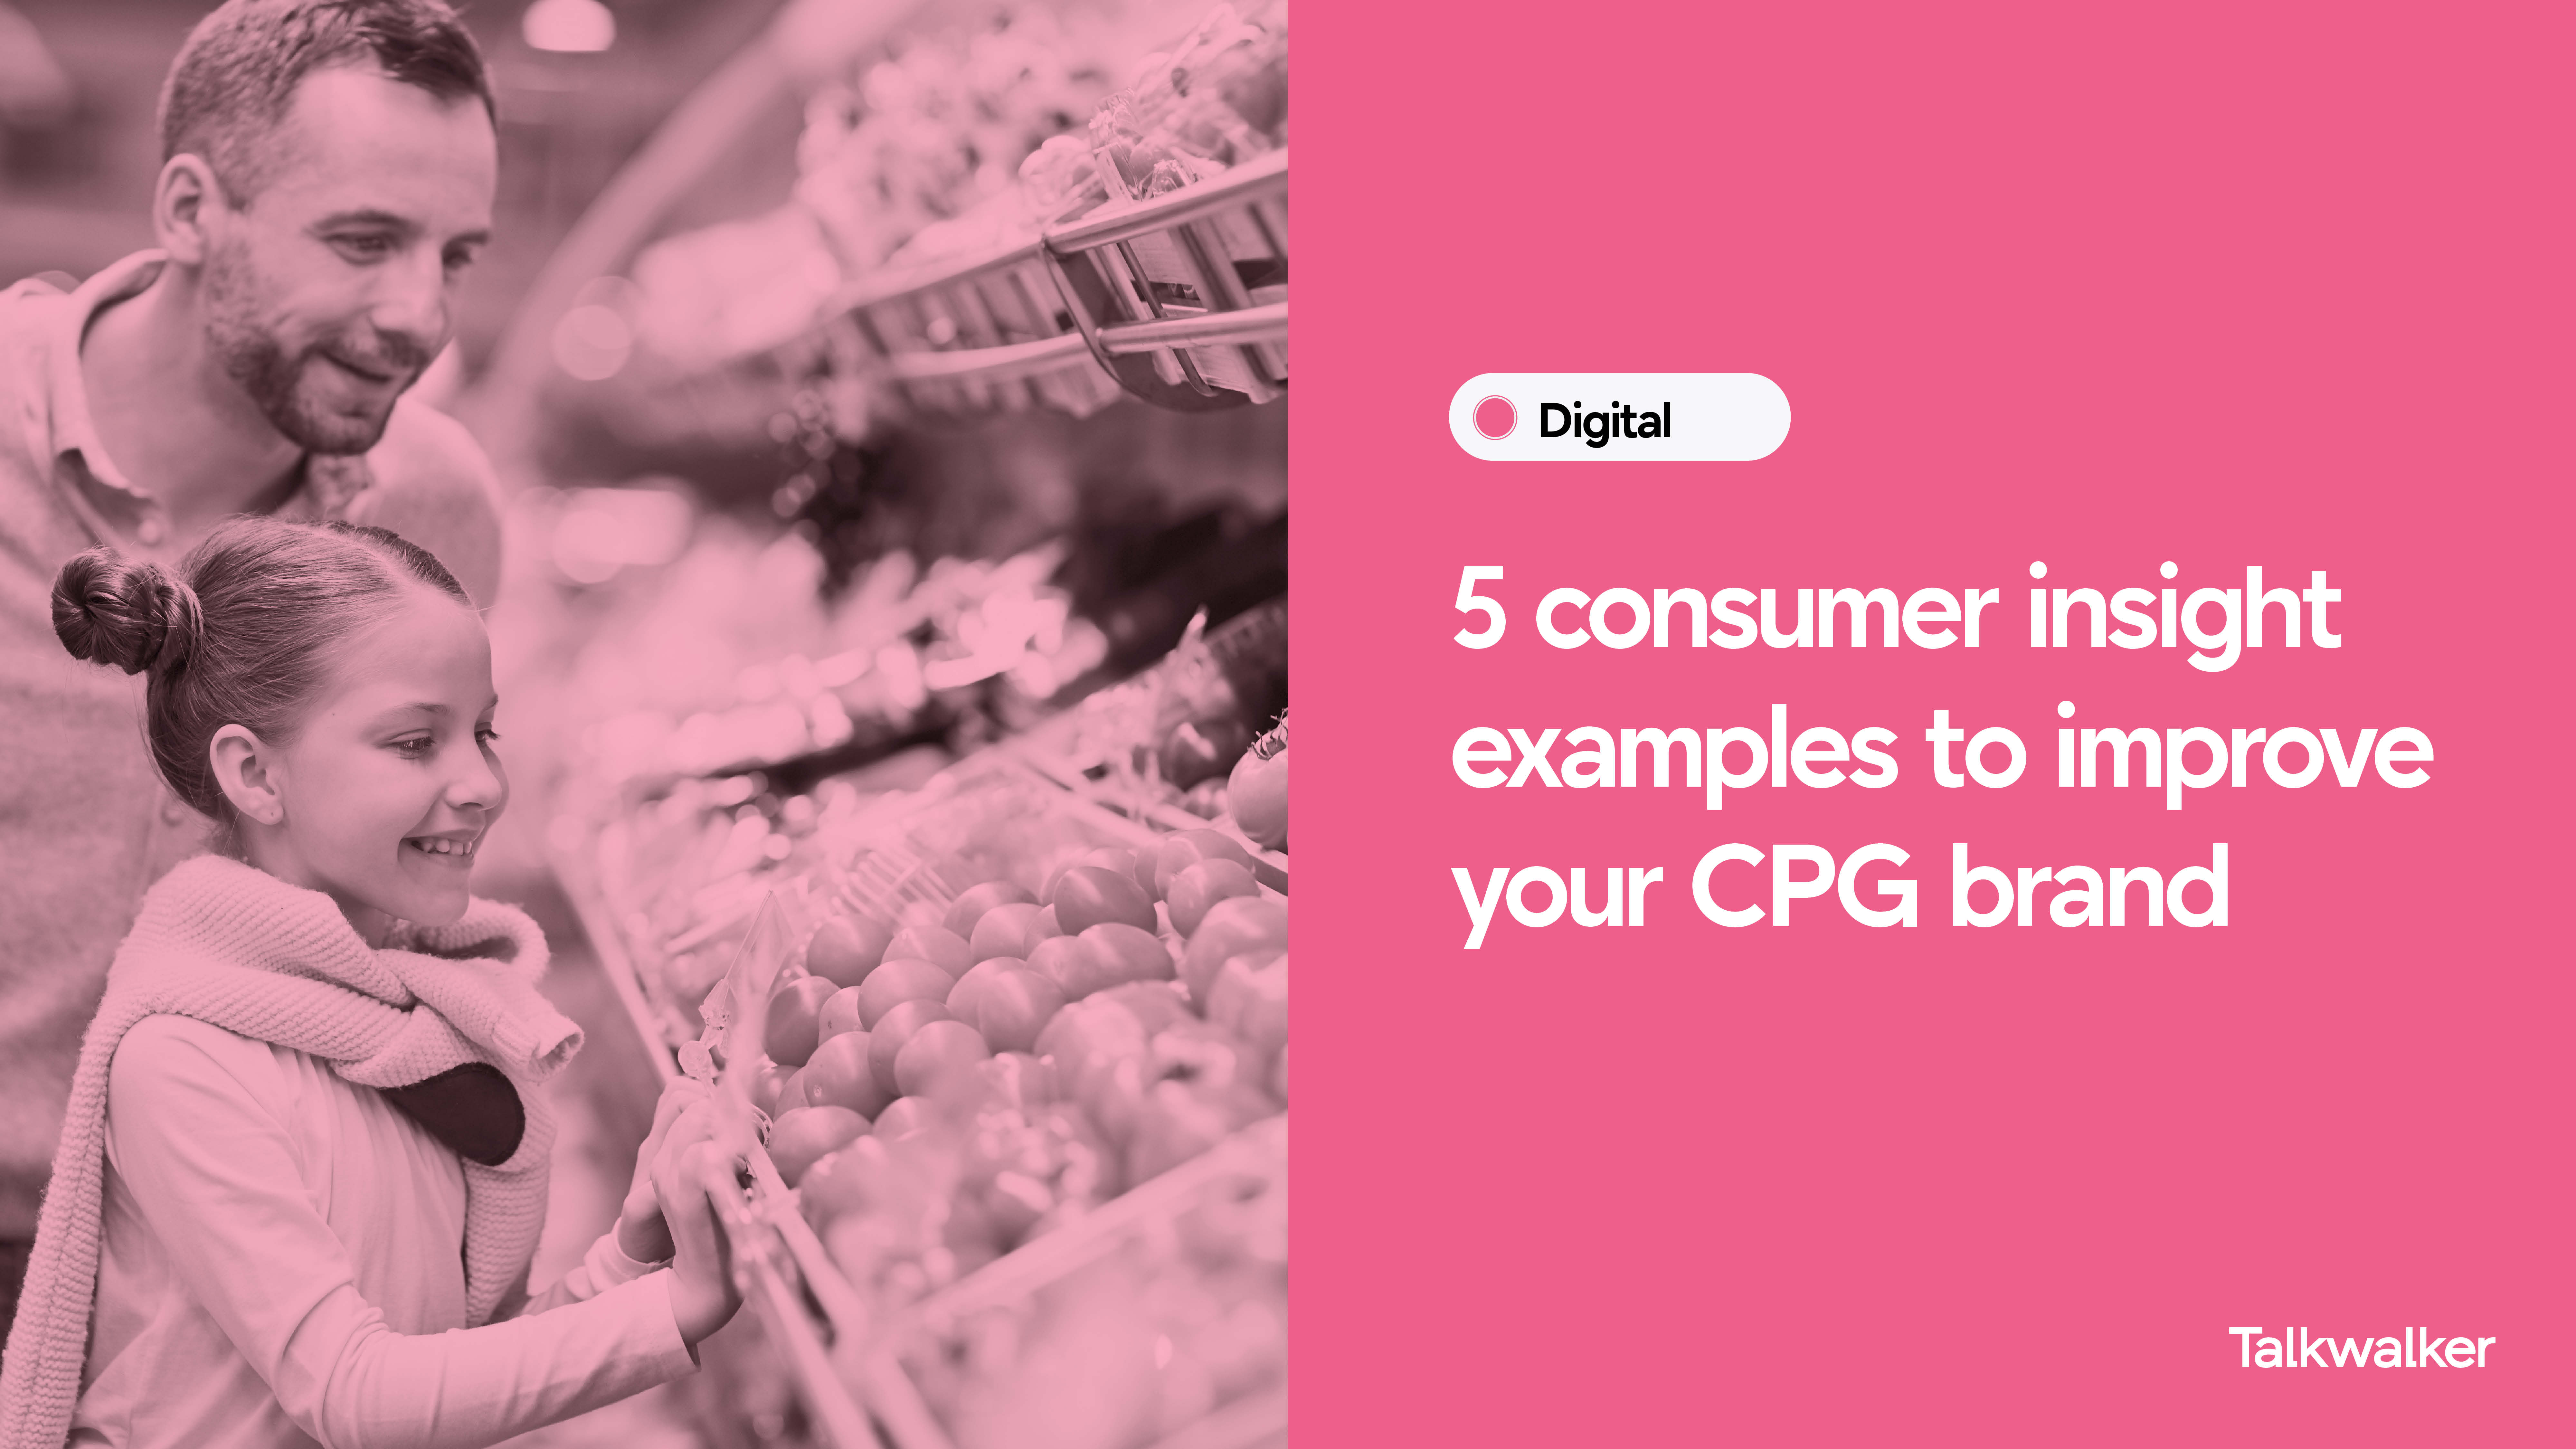 5 consumer insight examples to improve your CPG brand